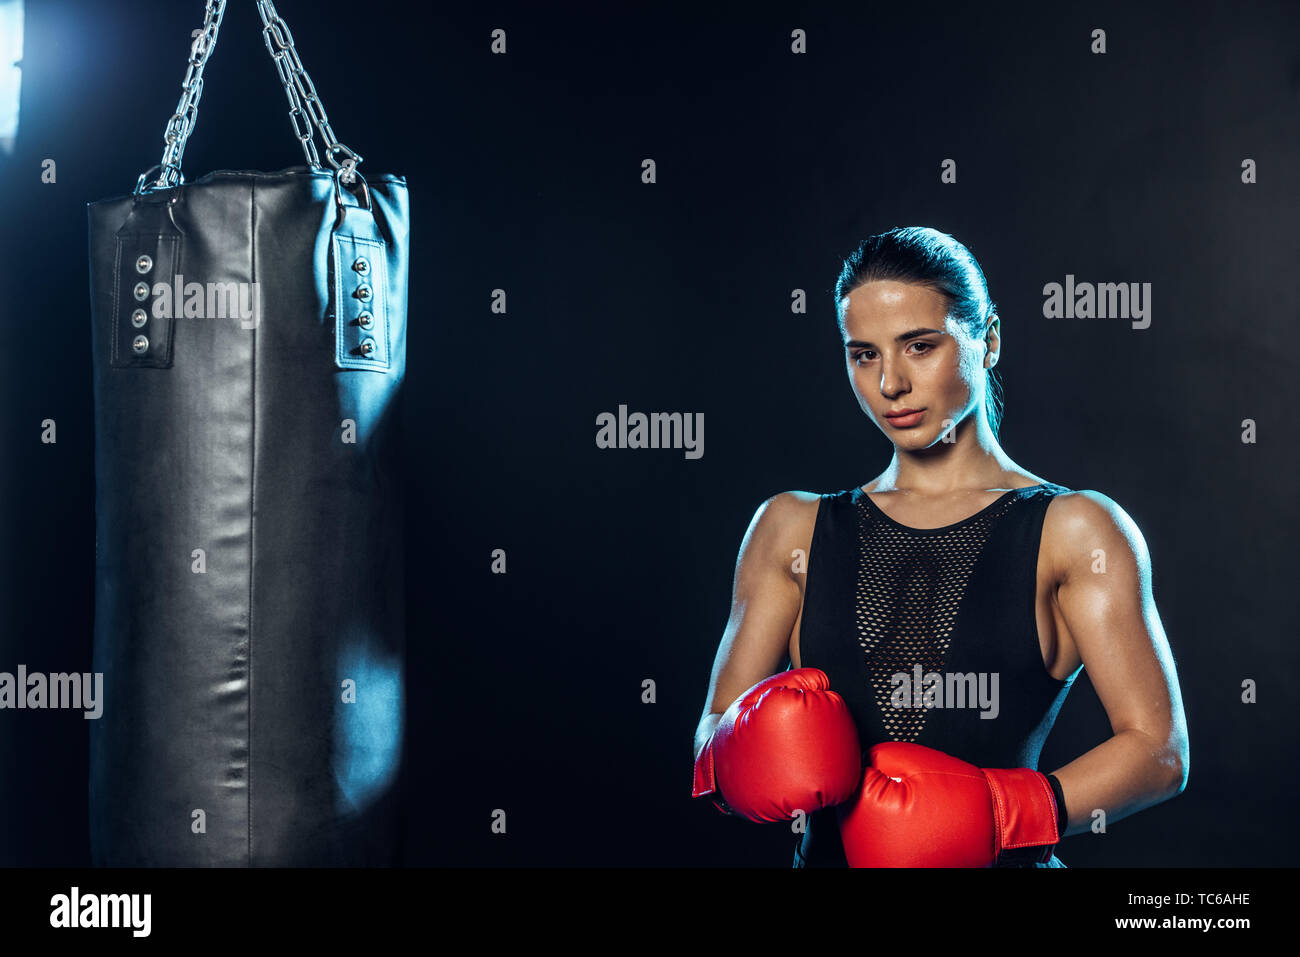 Strong boxer in red gloves standing near punching bag and looking at camera on black - Stock Image